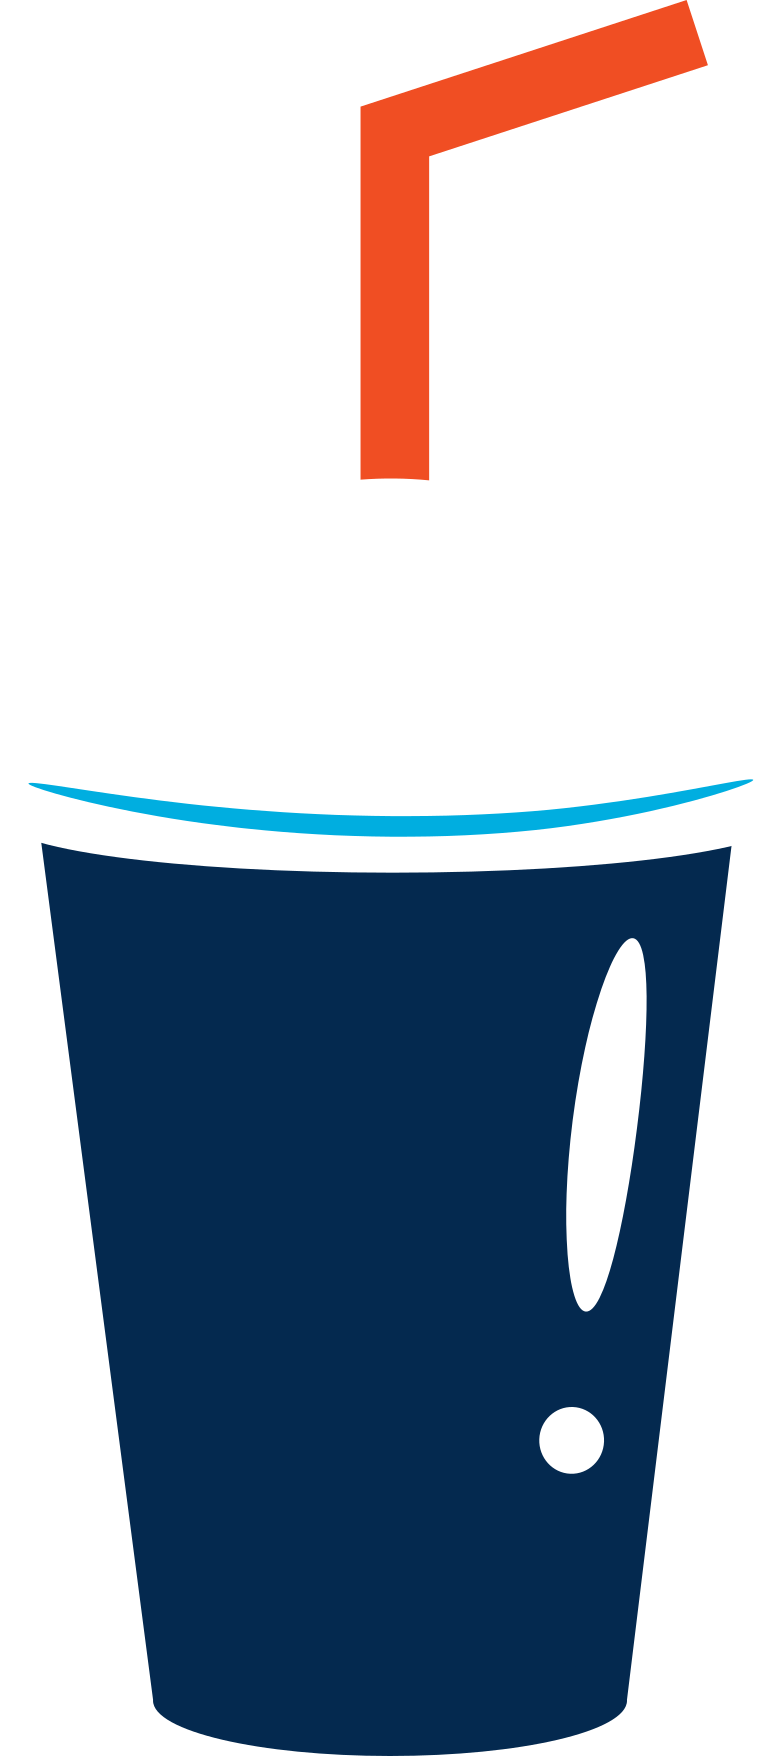 style milk shake Vector images in PNG and SVG | Icons8 Illustrations